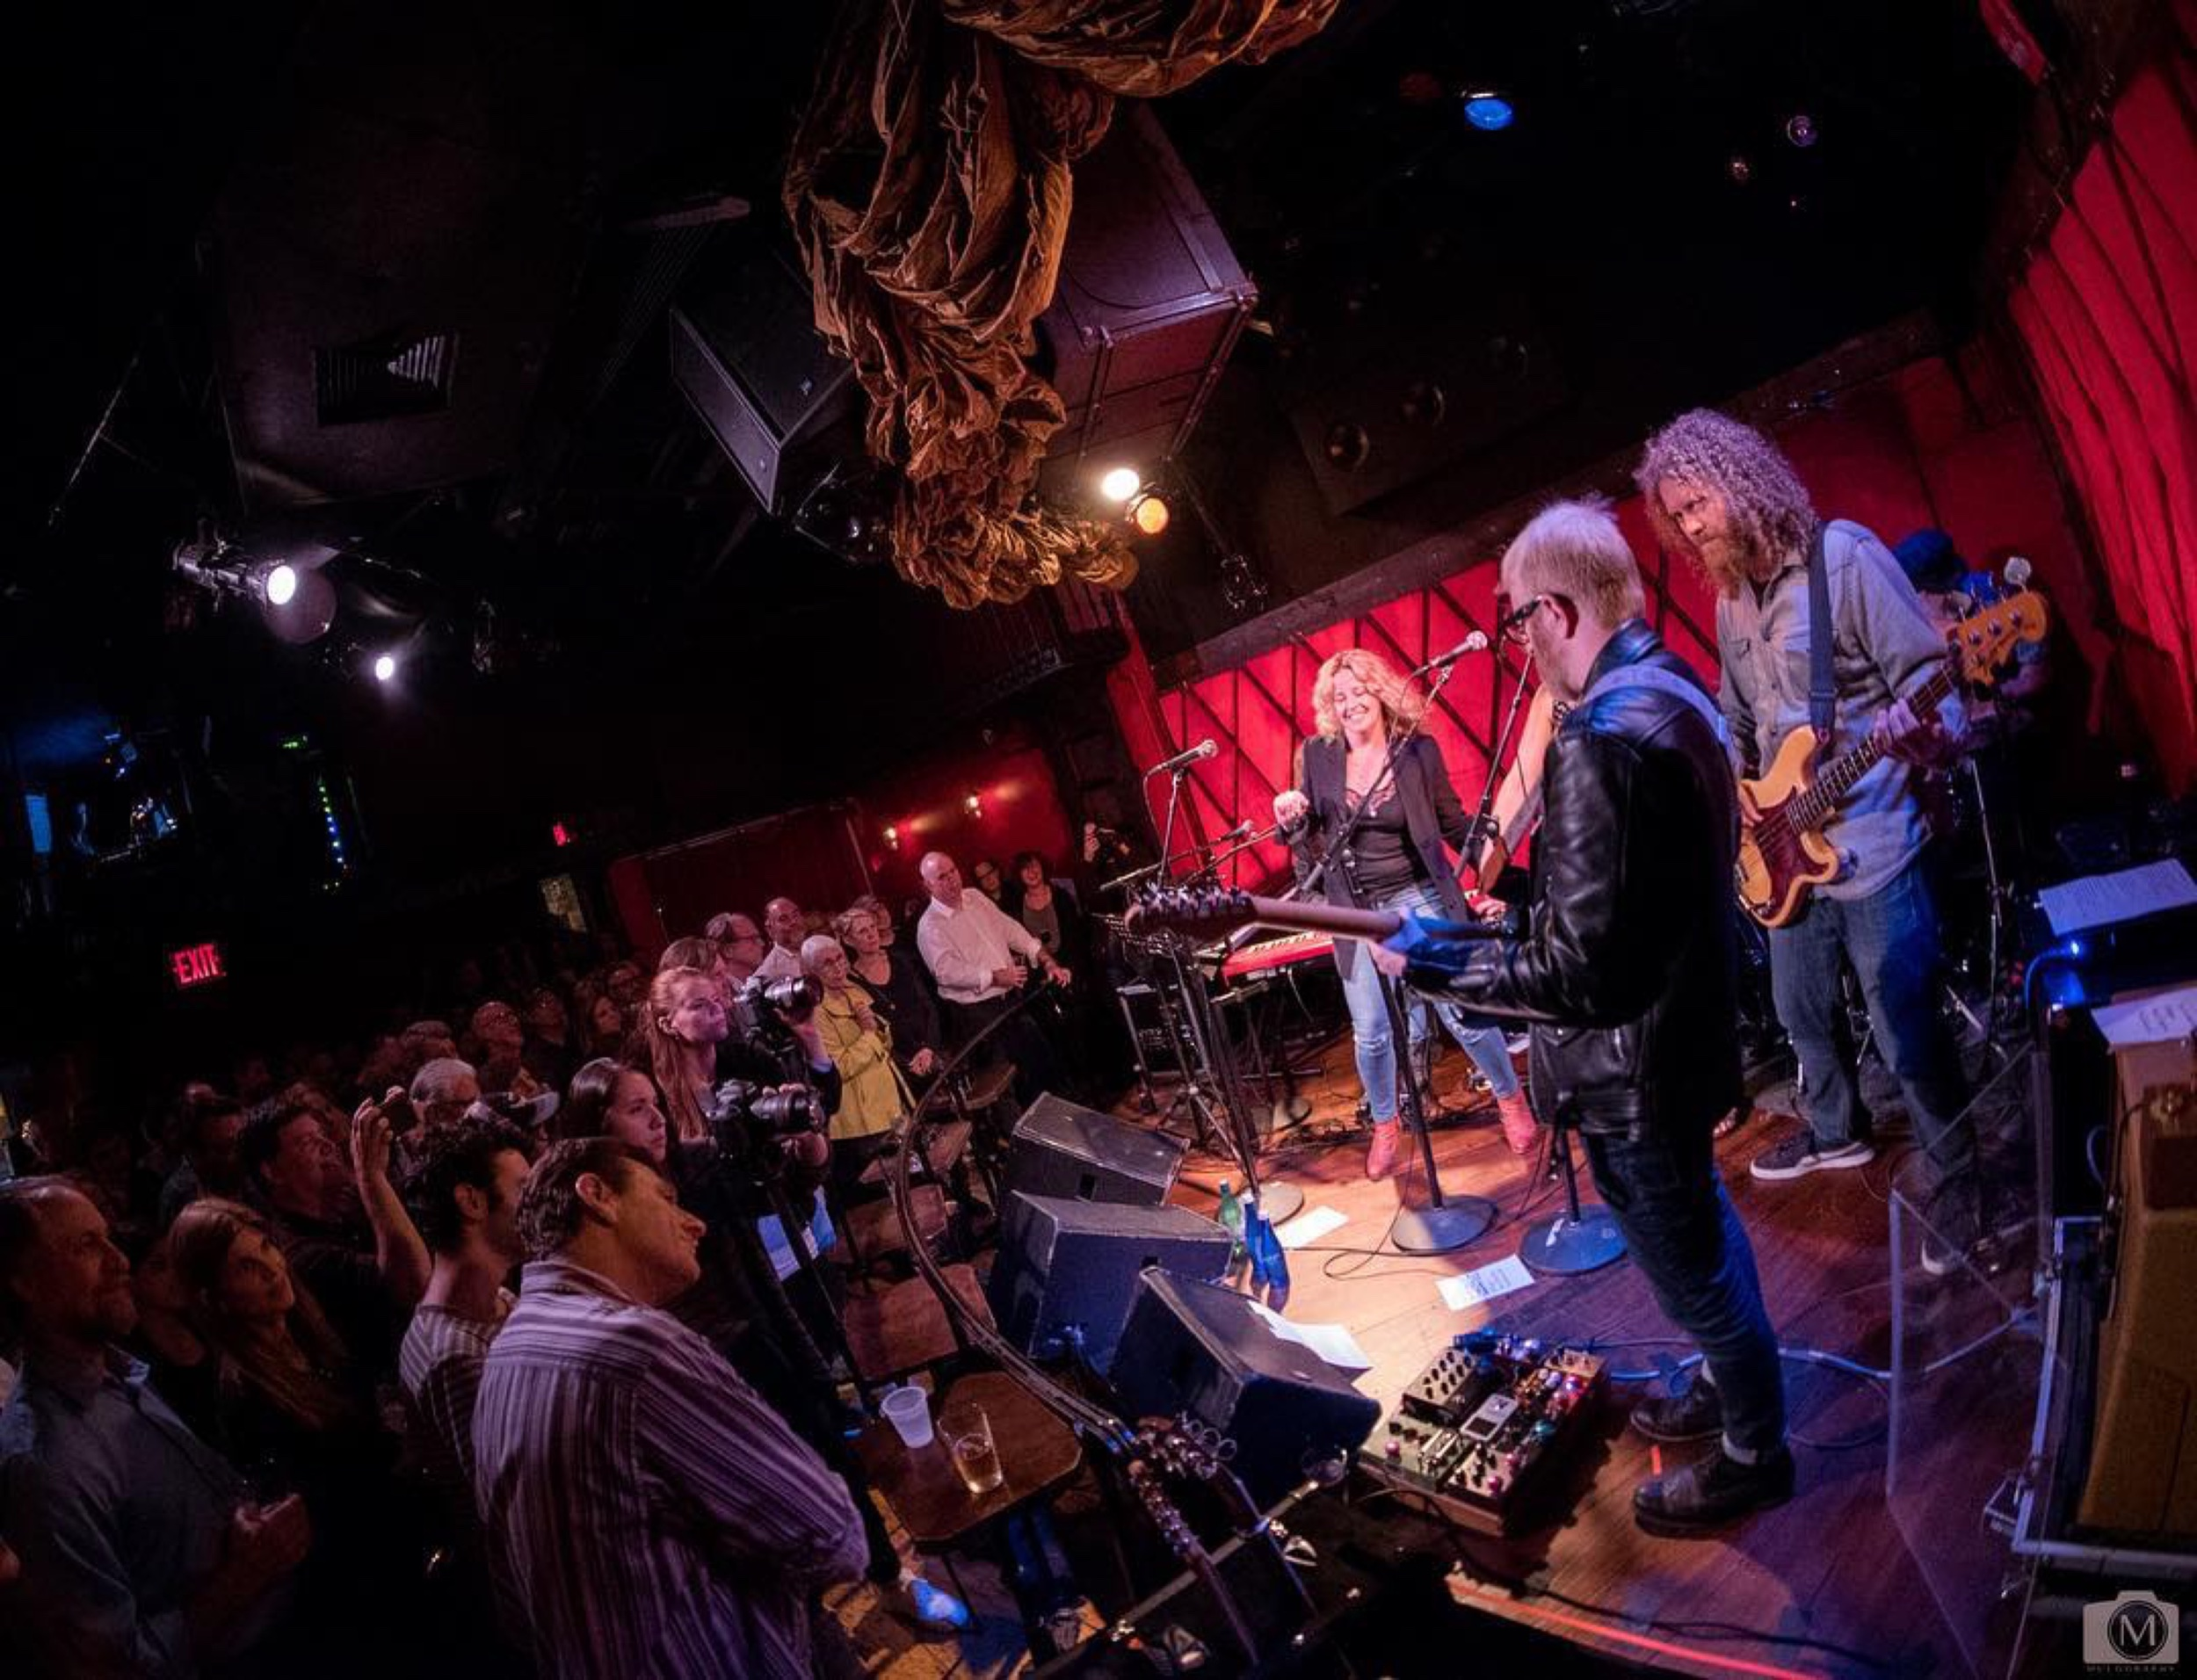 Playing at Rockwood Music Hall in NYC which was a live recording for radio